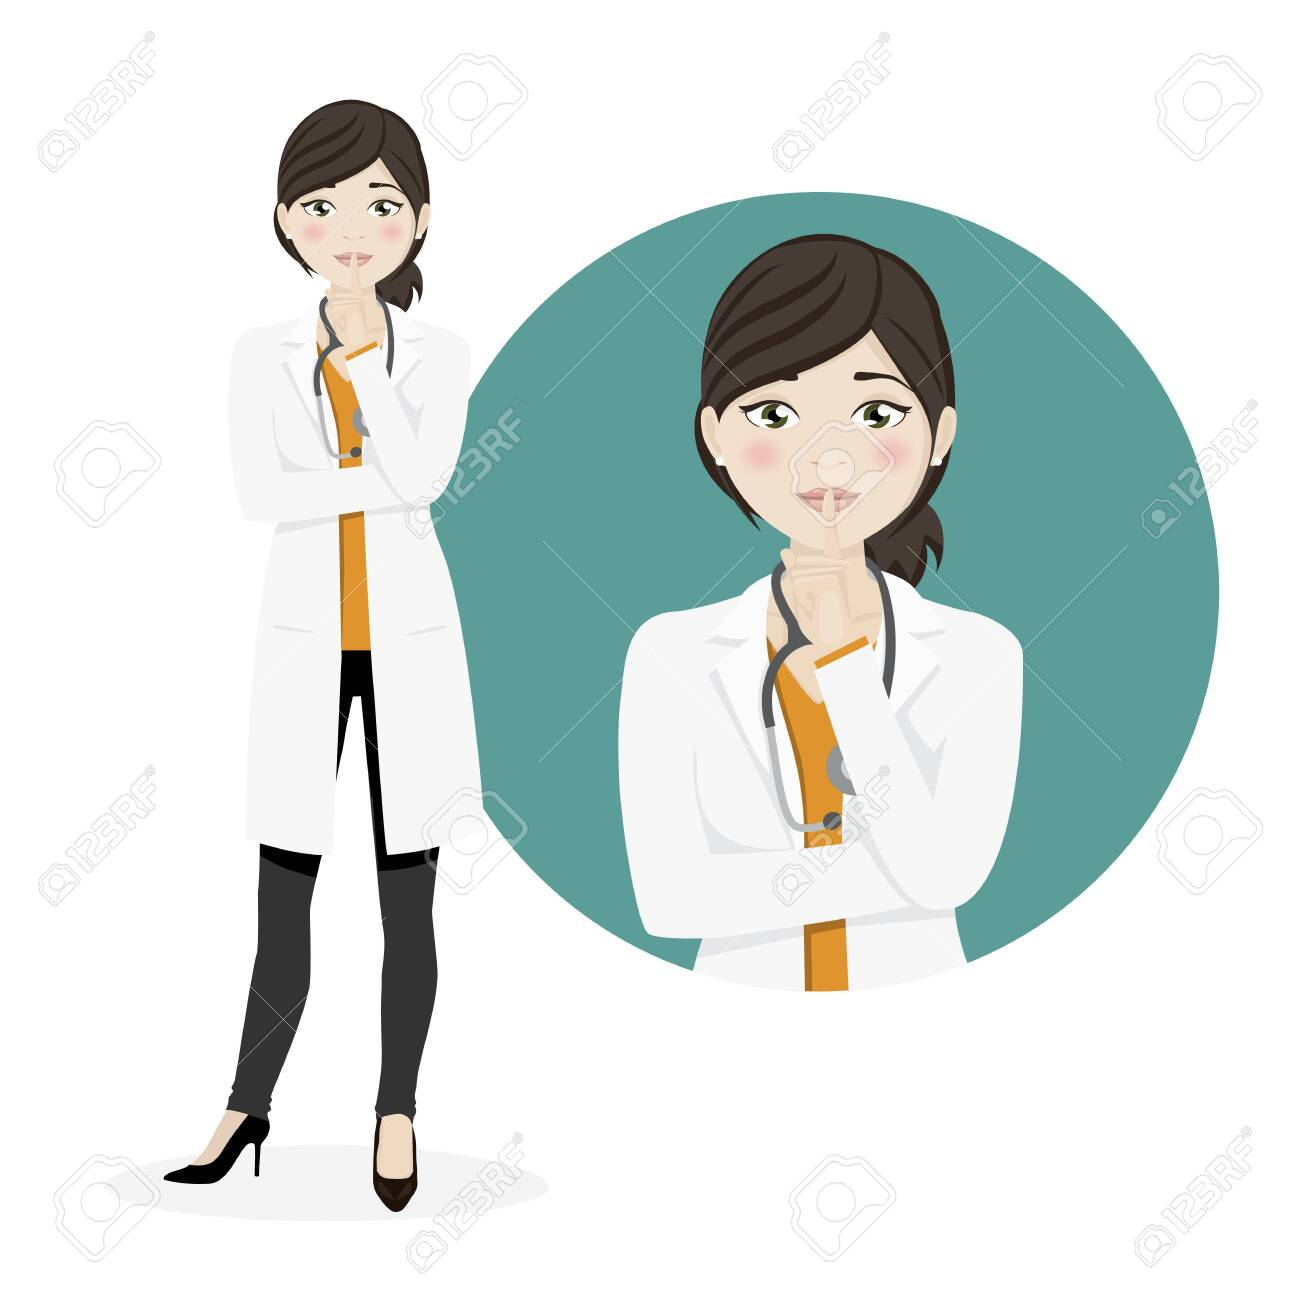 Woman doctor asking for silence on a white background. Vector illustration - 124348706